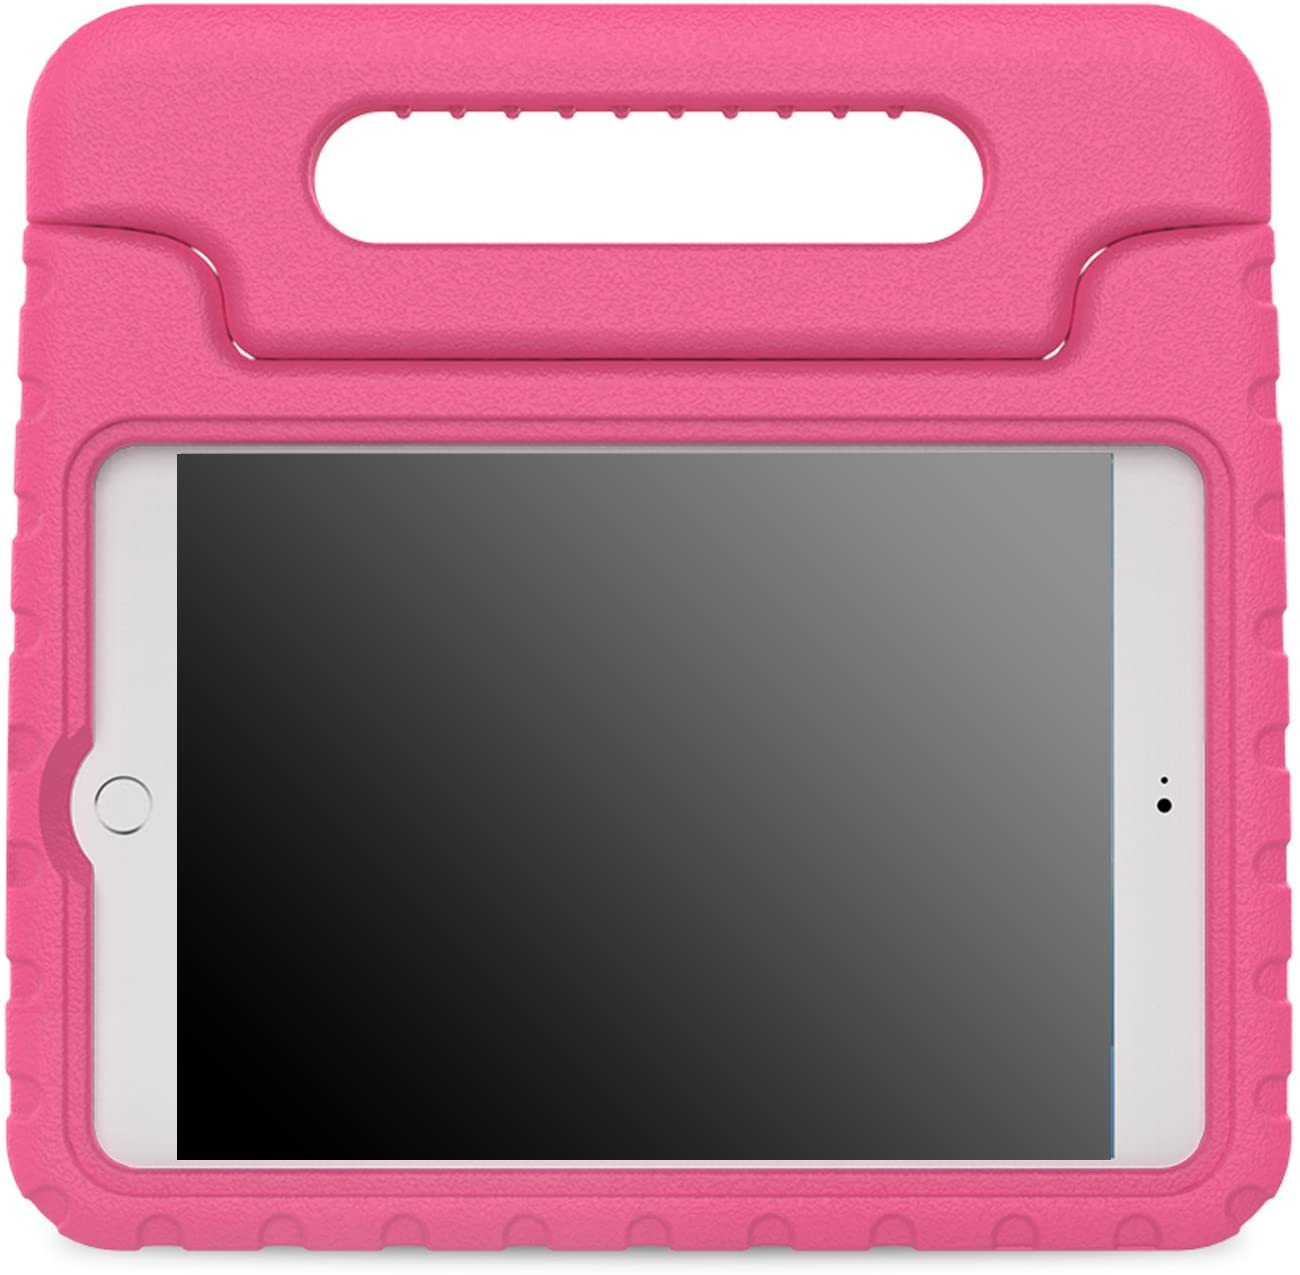 MoKo Case Fit iPad Mini 4 - Kids Shock Proof Convertible Handle Light Weight Super Protective Stand Cover Case Fit Apple iPad Mini 4 2015 Tablet, Magenta